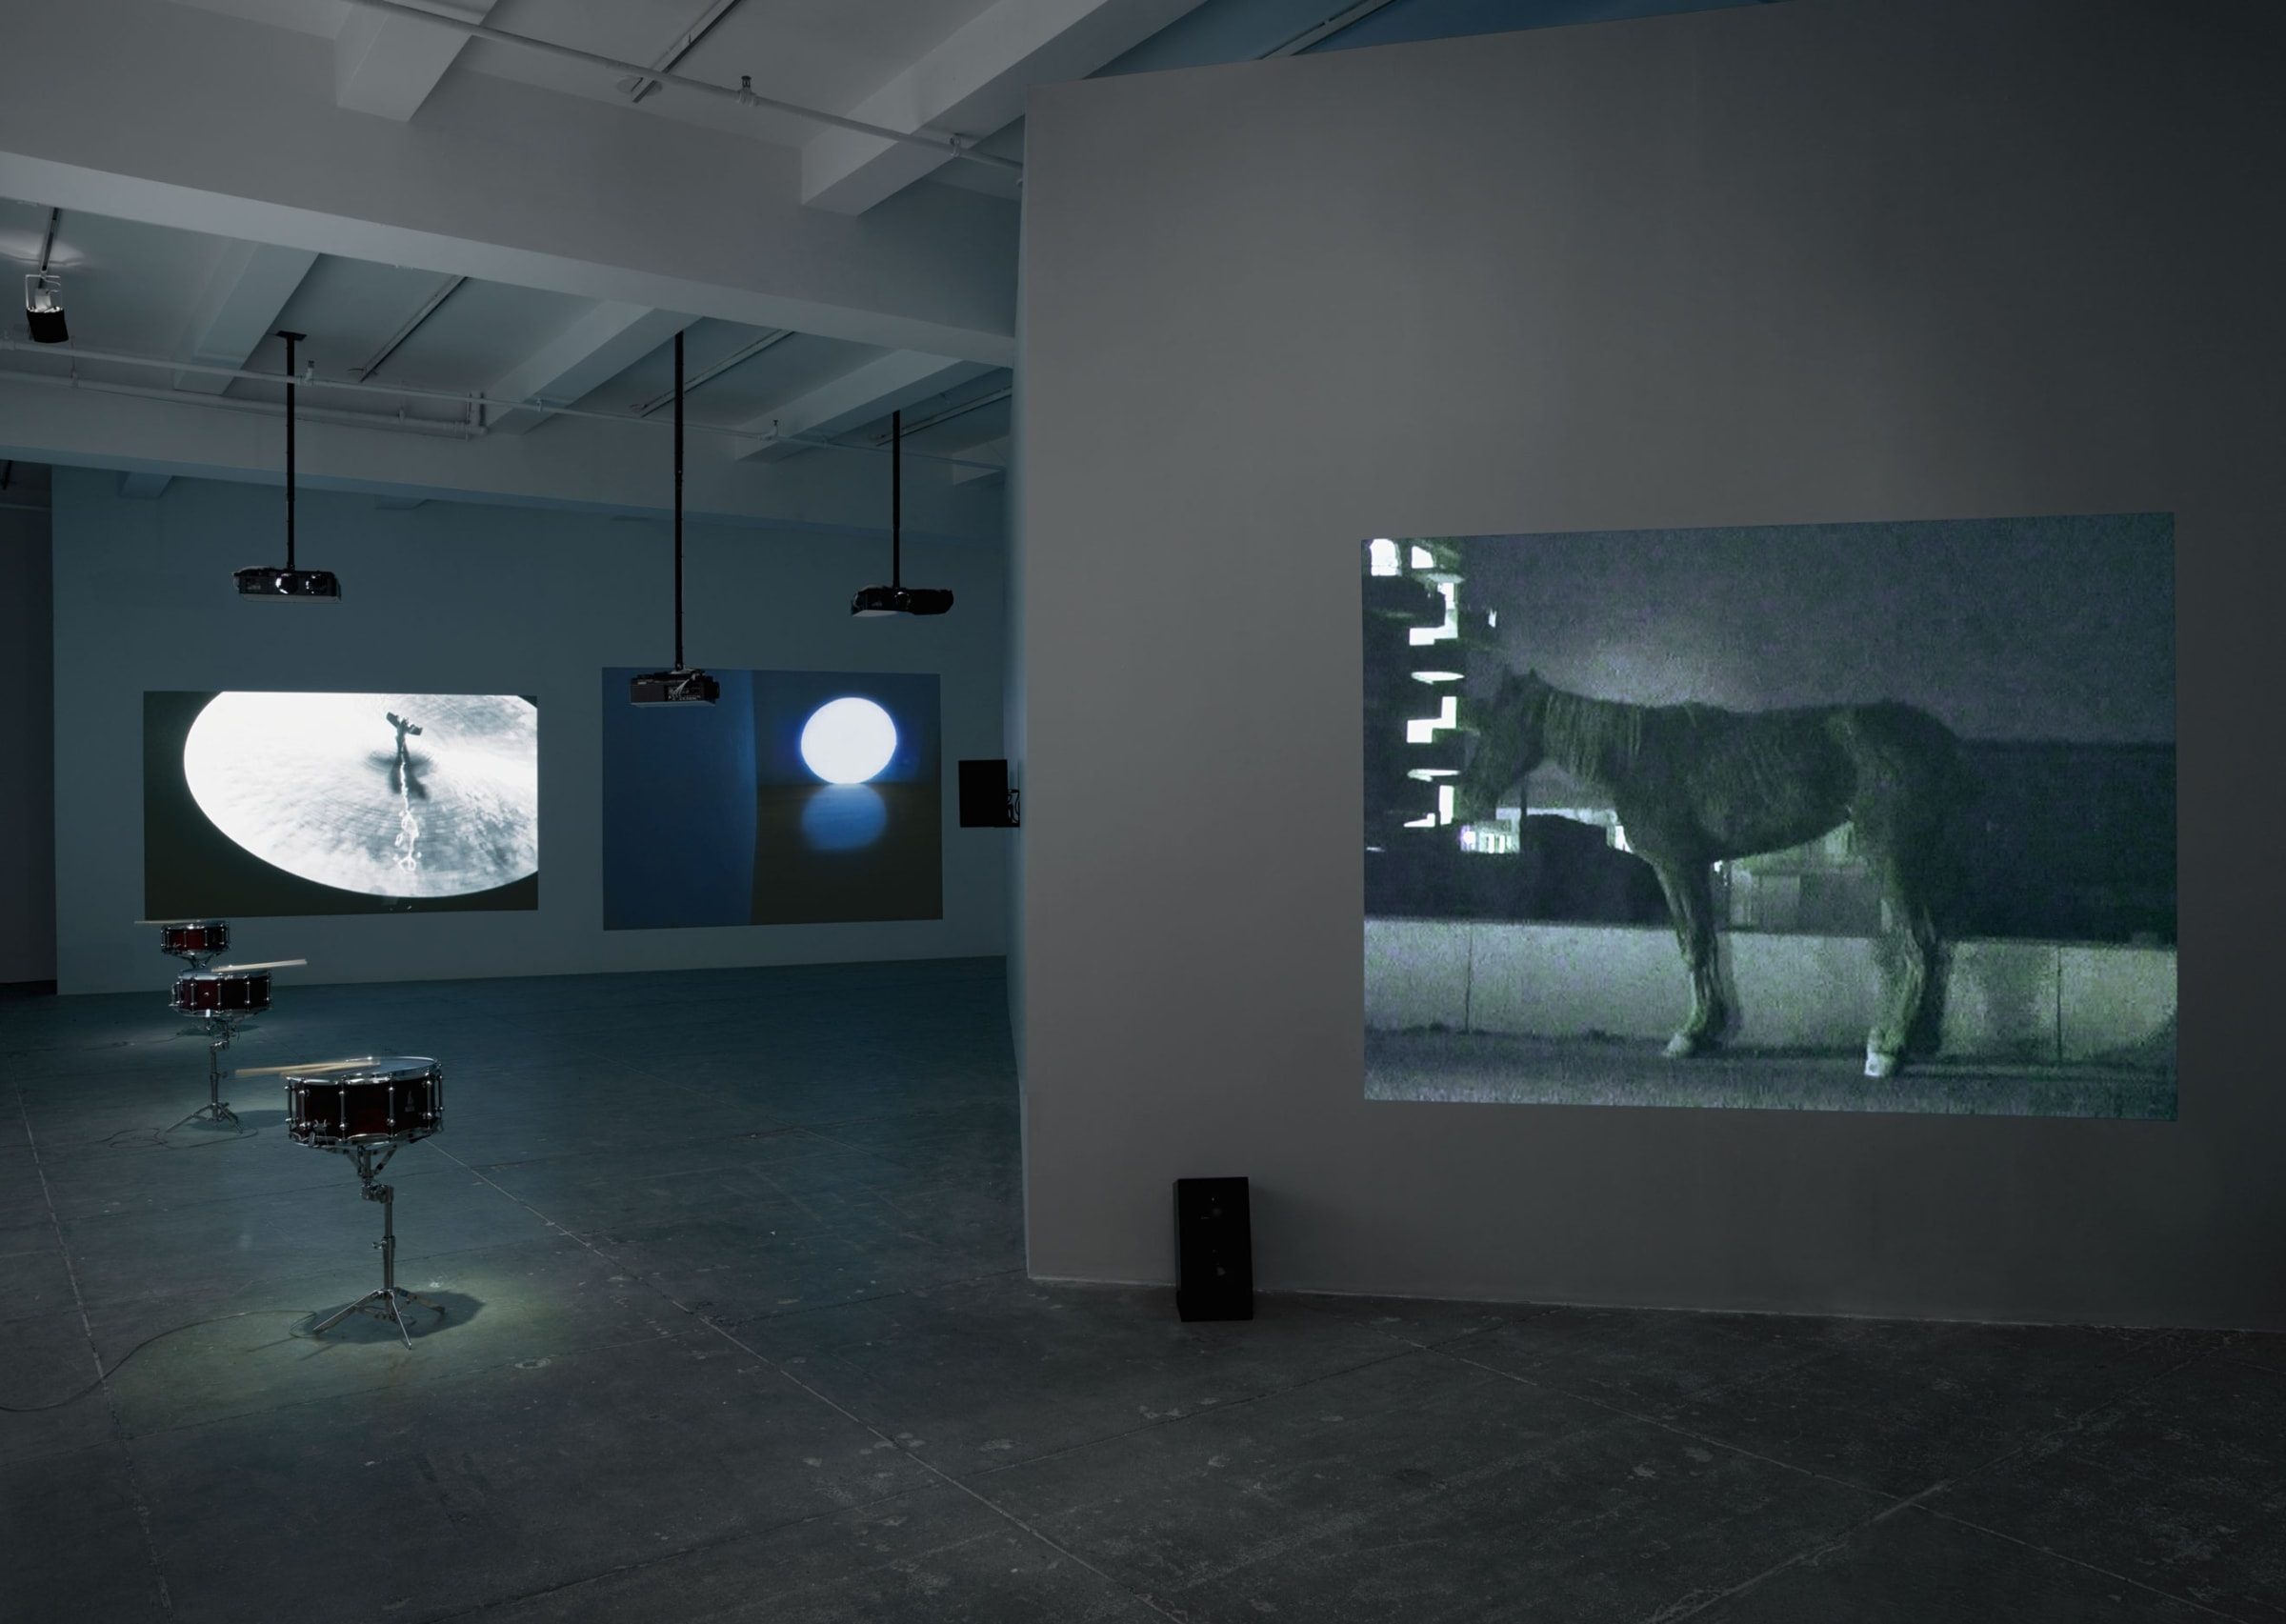 3 projections fill a darkened room while 3 snare kits sit in a line on the left. The projections display a cymbal, a circle of light, and a horse.